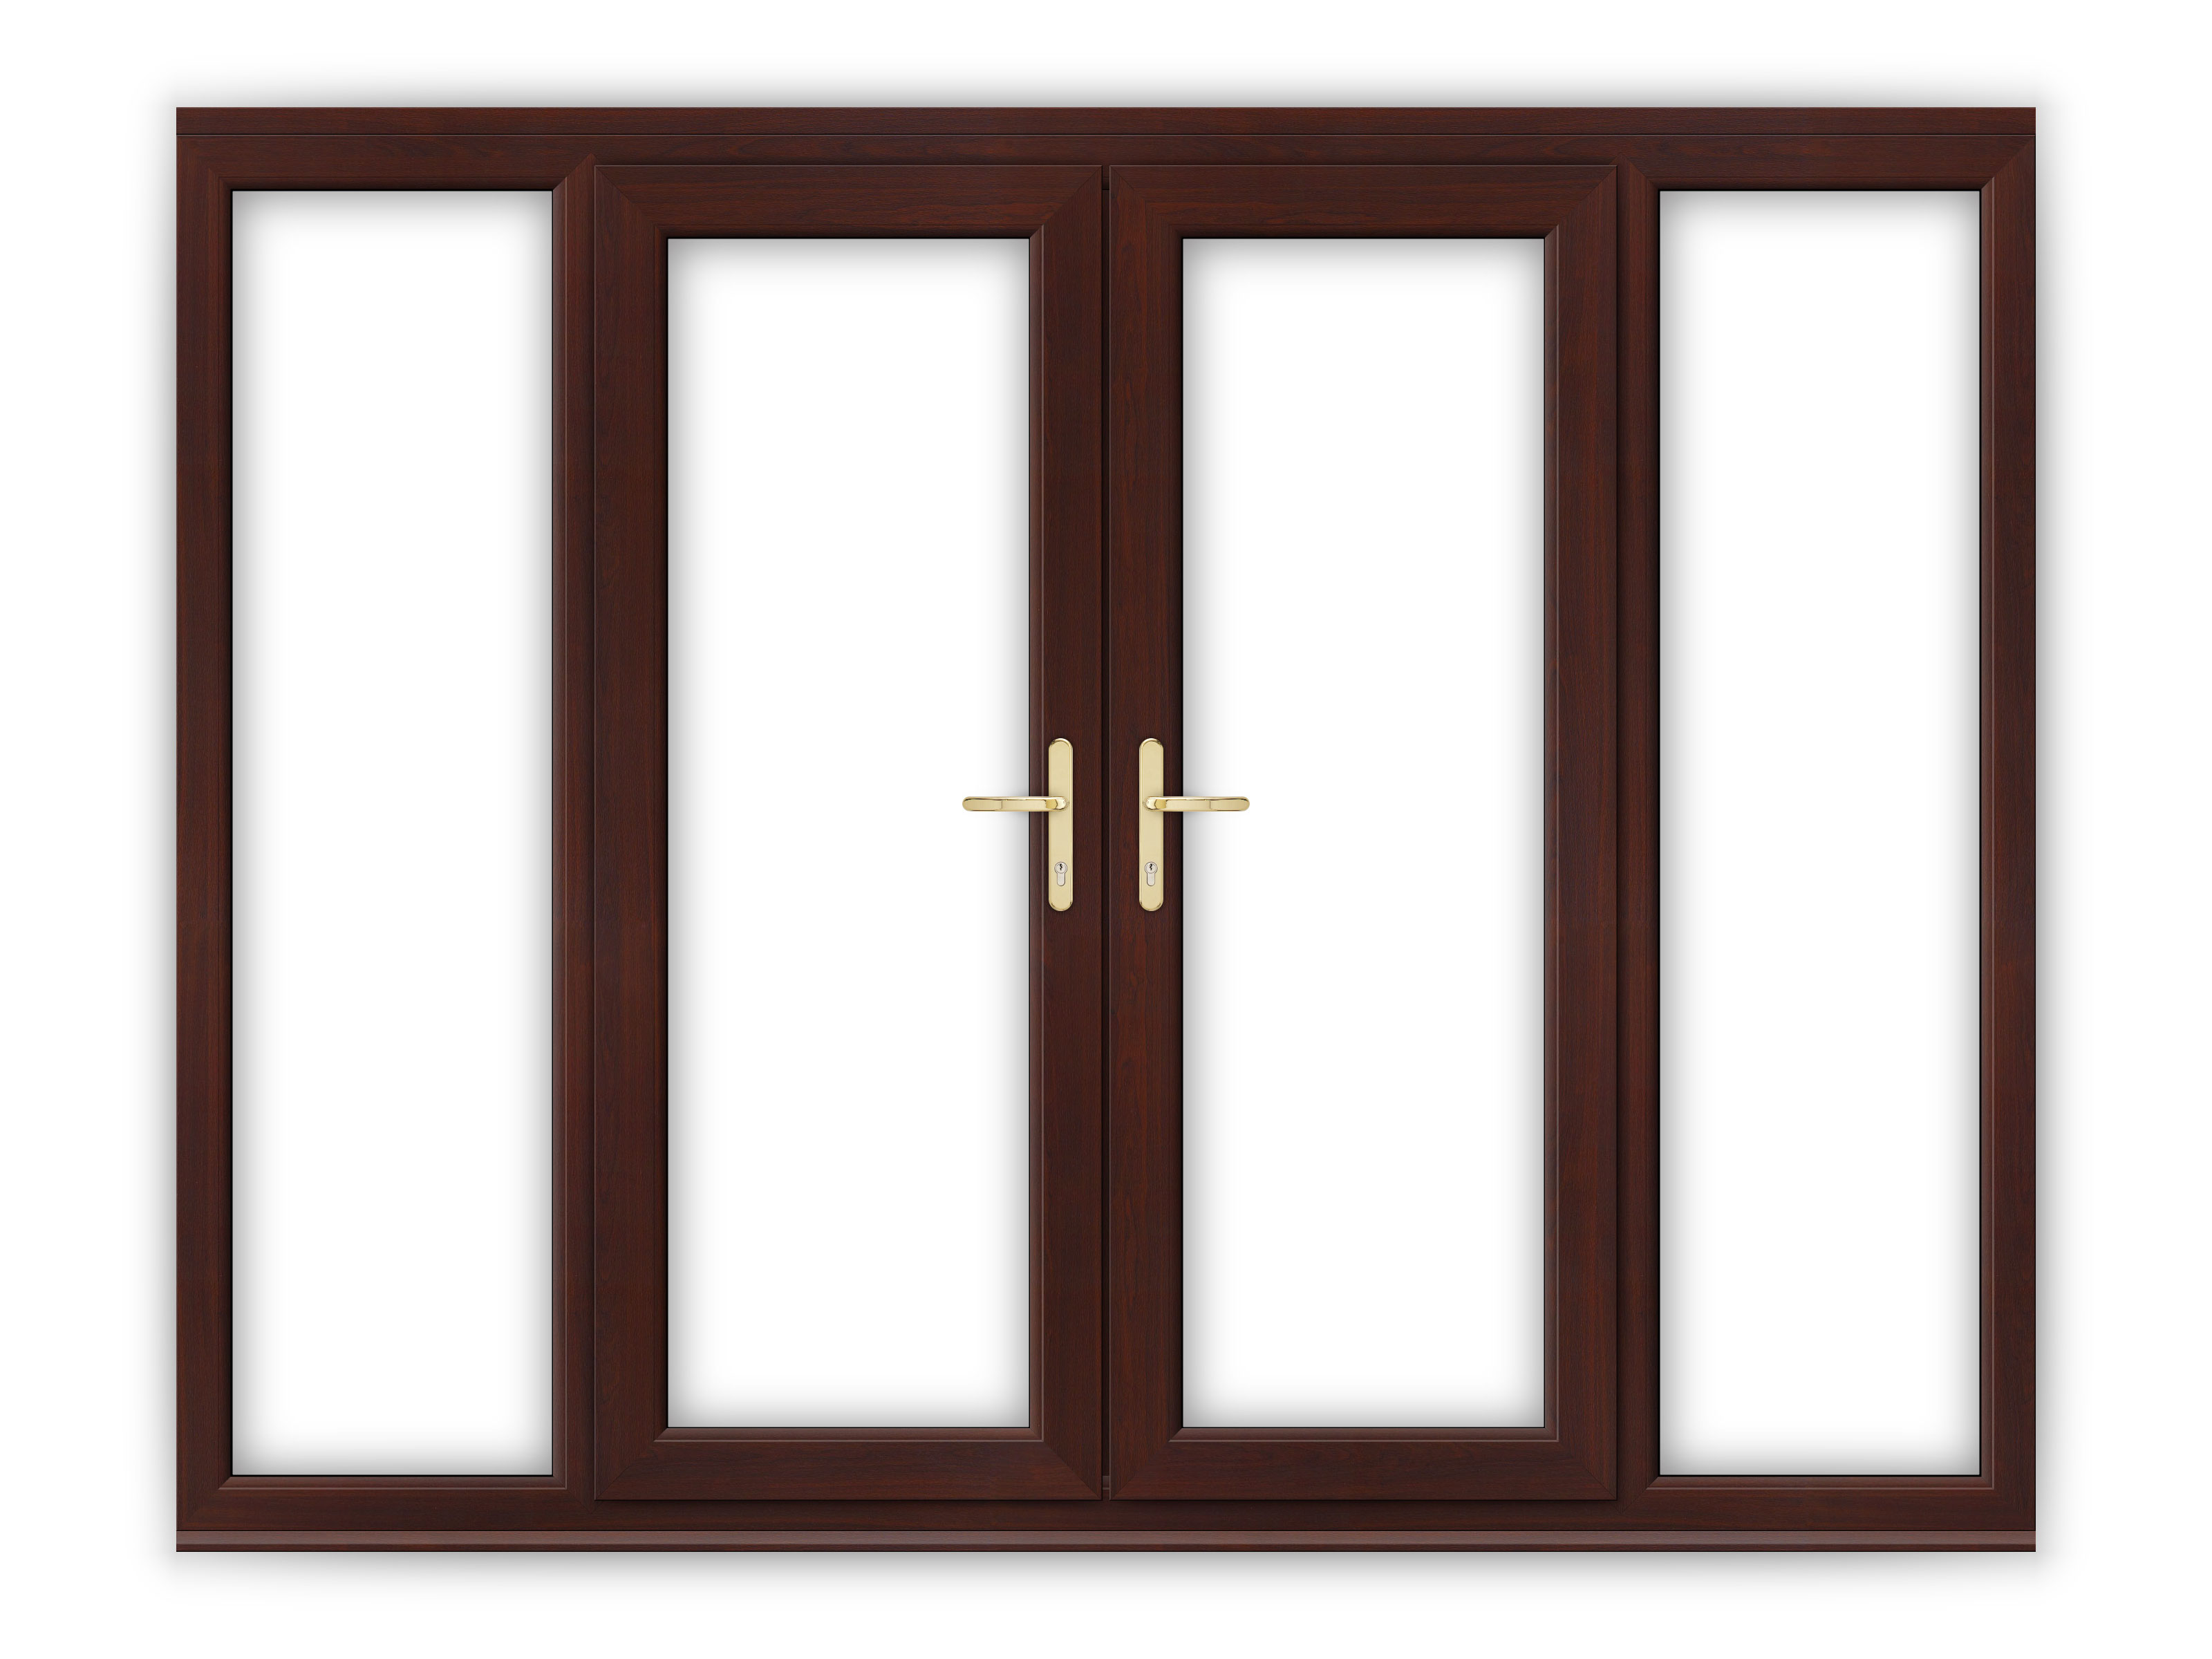 5ft rosewood upvc french doors with wide side panels for Upvc french doors 1790 x 2090mm